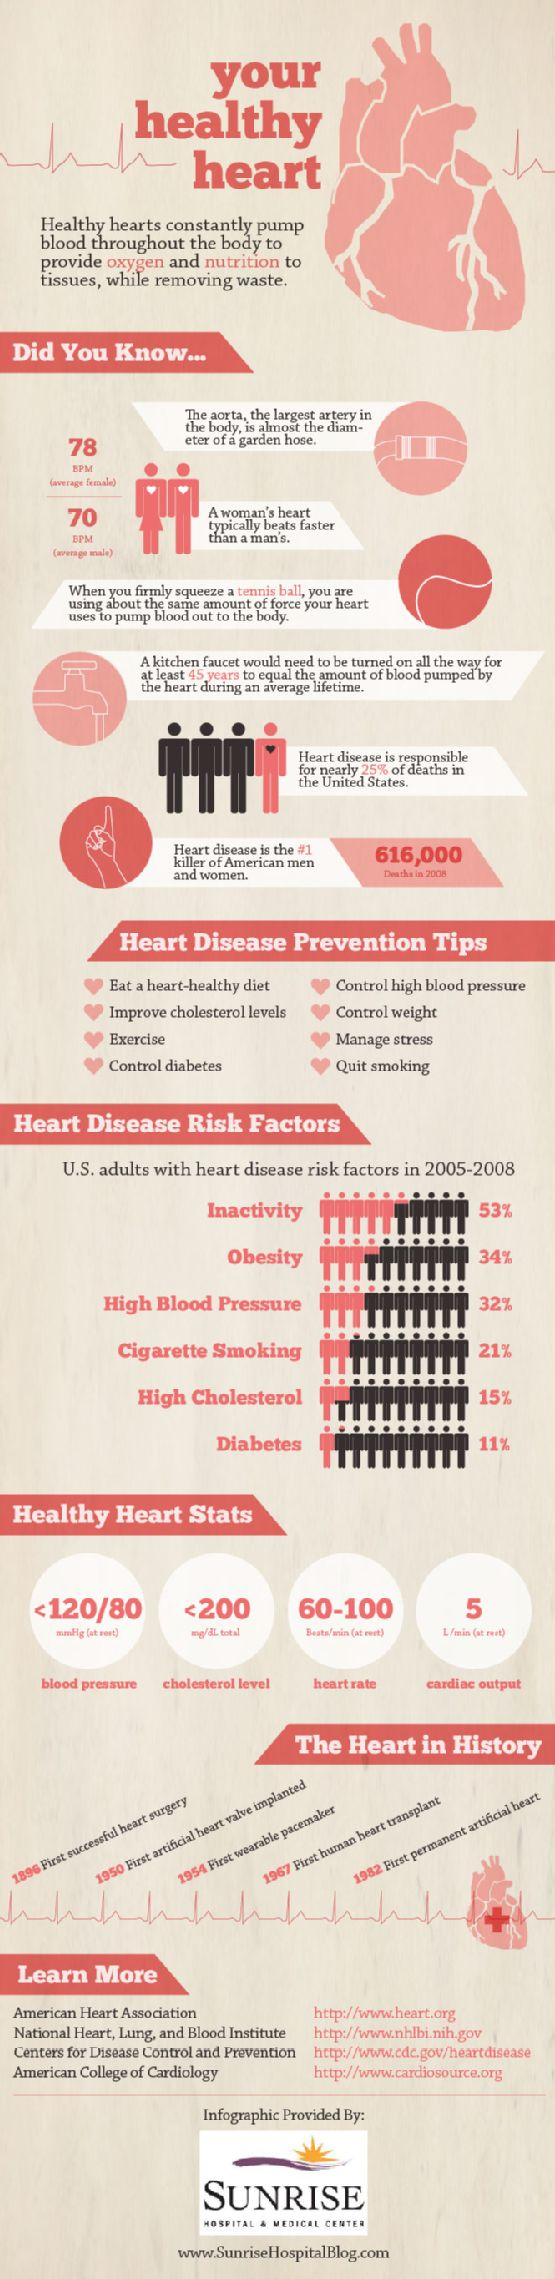 Learn how to keep your heart healthy with heart disease prevention tips and resources.